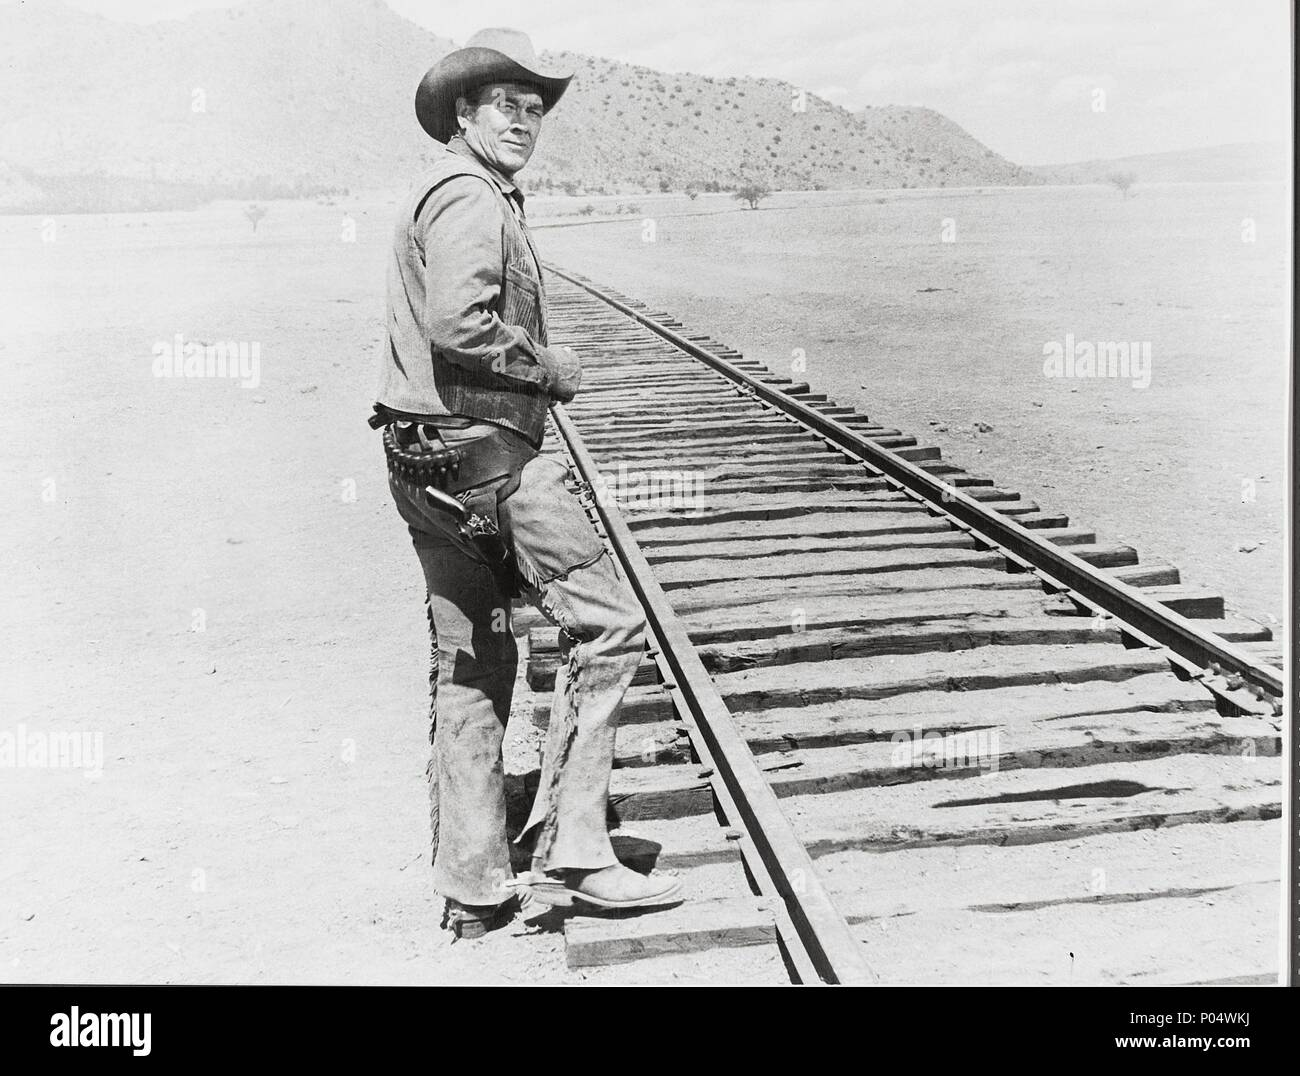 Original Film Title: THE TRAIN ROBBERS.  English Title: THE TRAIN ROBBERS.  Film Director: BURT KENNEDY.  Year: 1973.  Stars: BEN JOHNSON. Credit: WARNER BROTHERS / Album - Stock Image